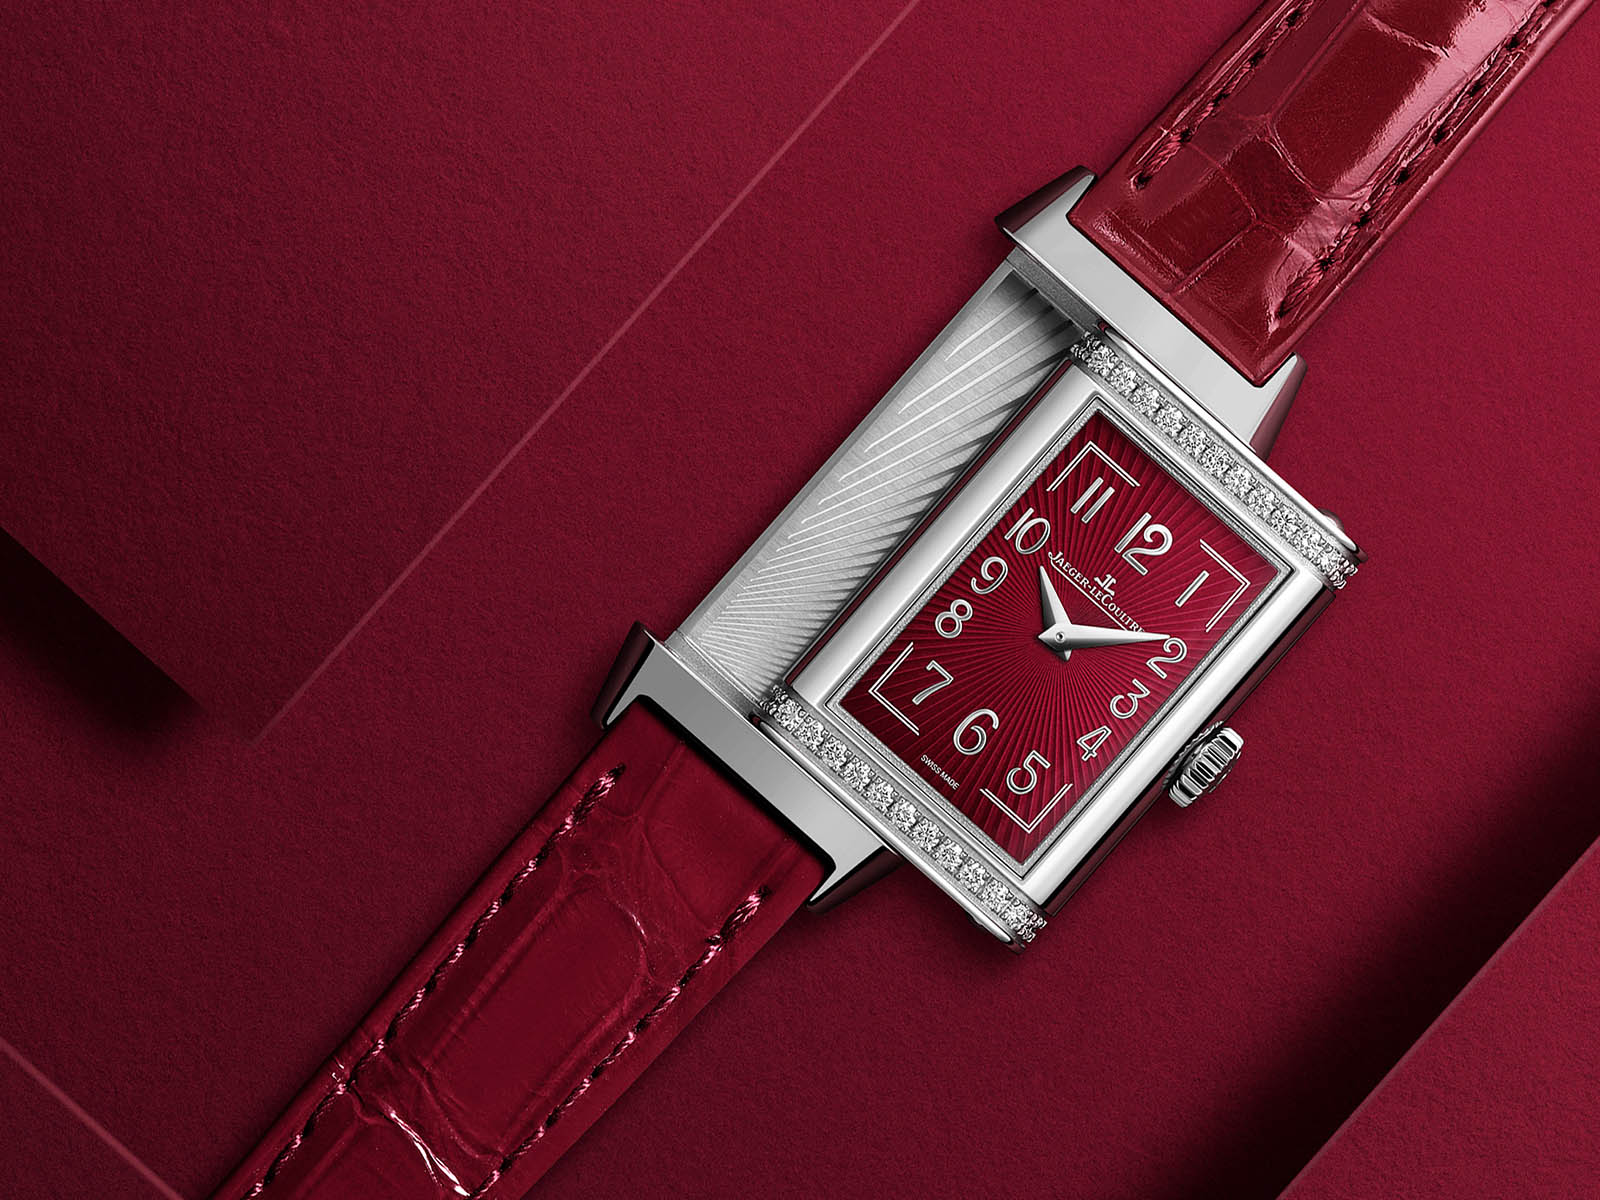 q3288560-jaeger-lecoultre-reverso-one-red-wine-2.jpg